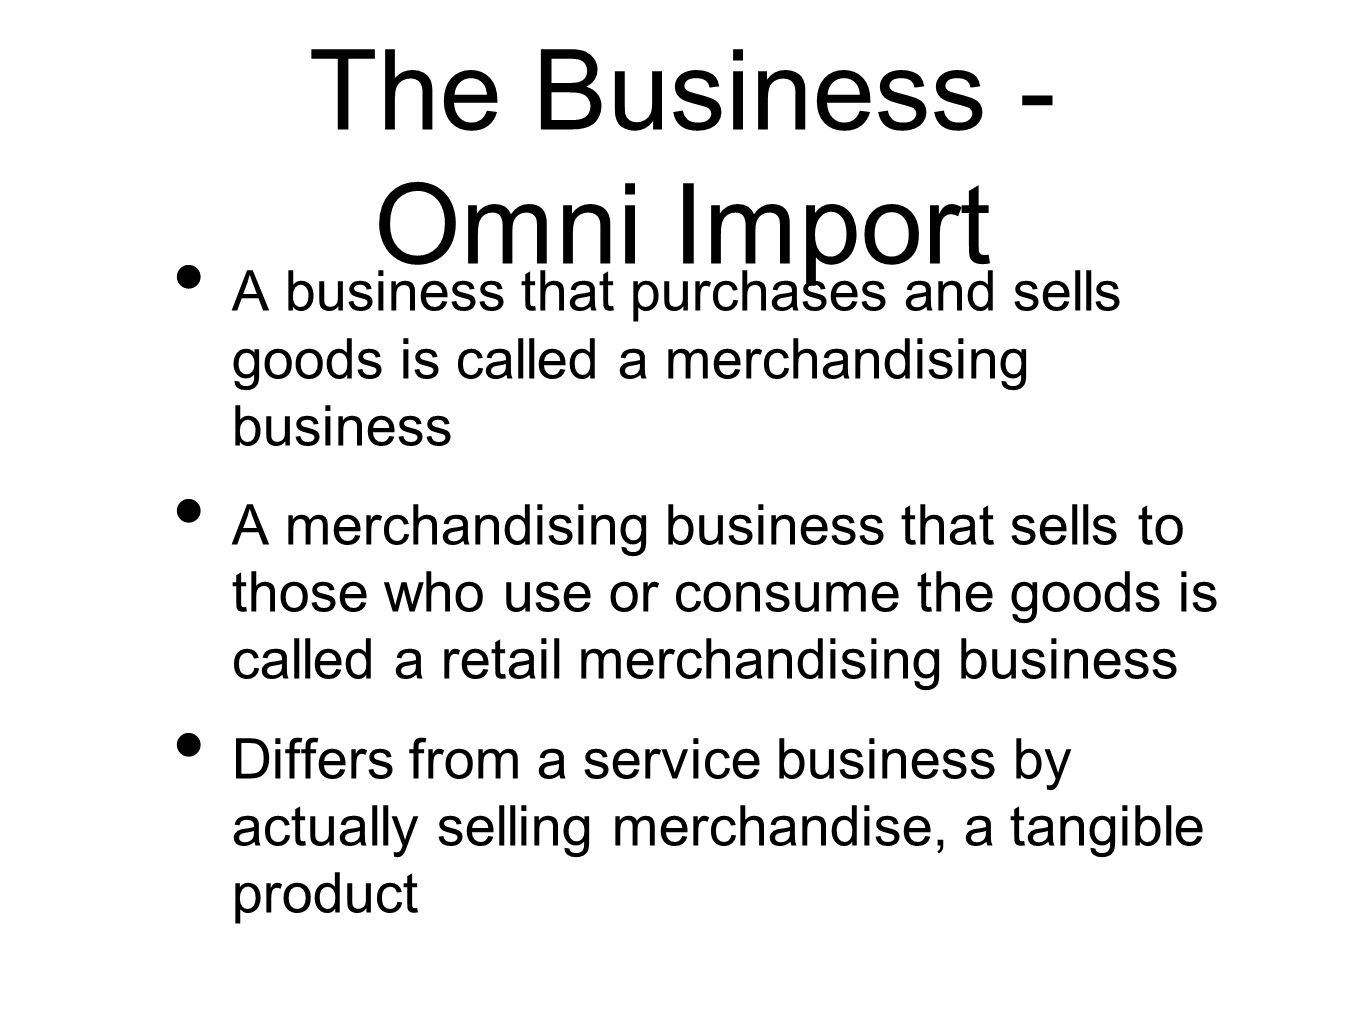 The Business - Omni Import